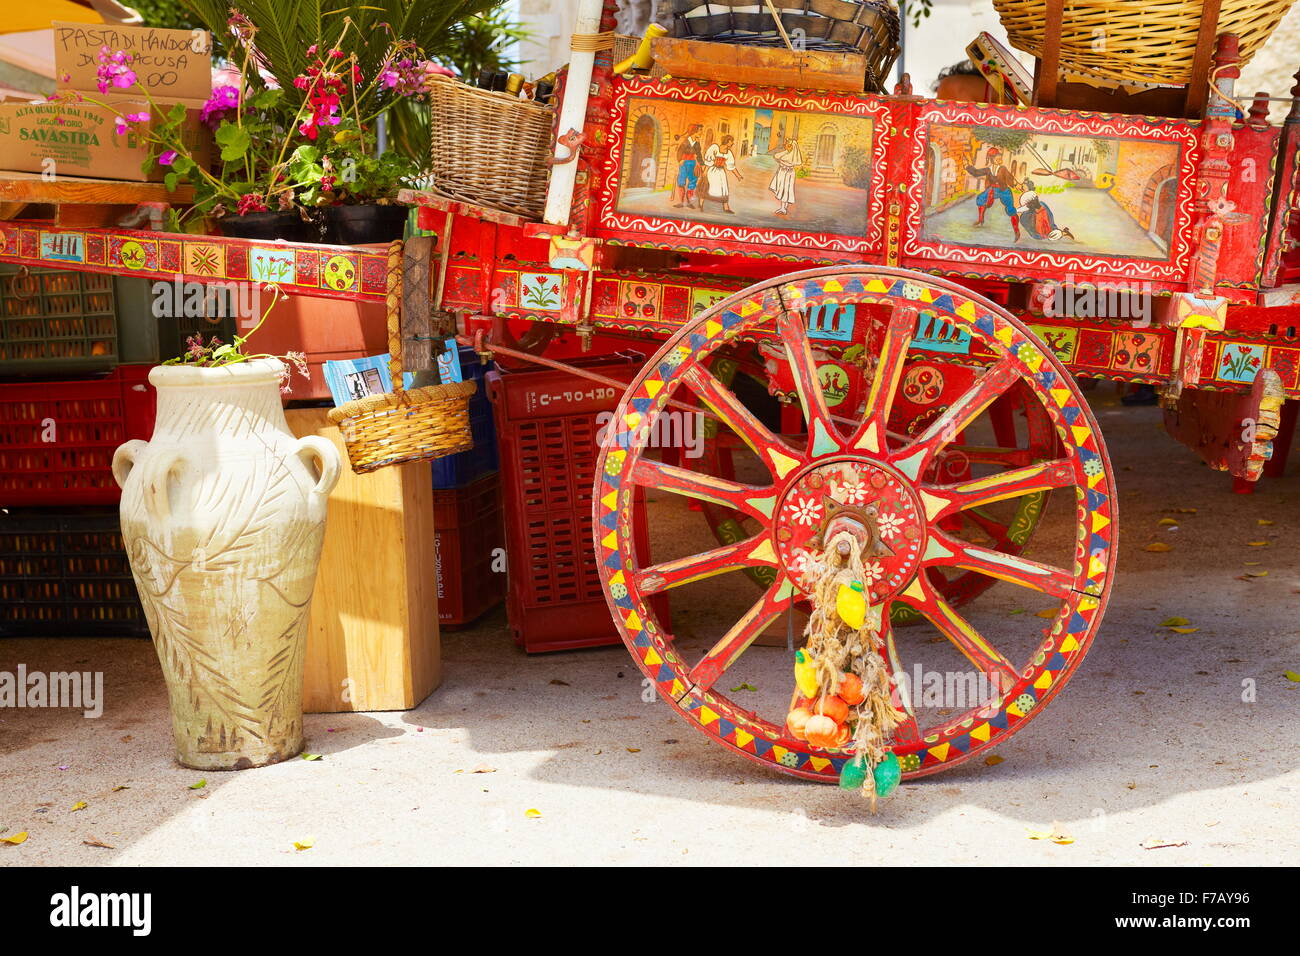 Colorful decorated cart, traditional Sicilian rural horse-drawn carriage, street decoration, Sicily Island, Italy - Stock Image